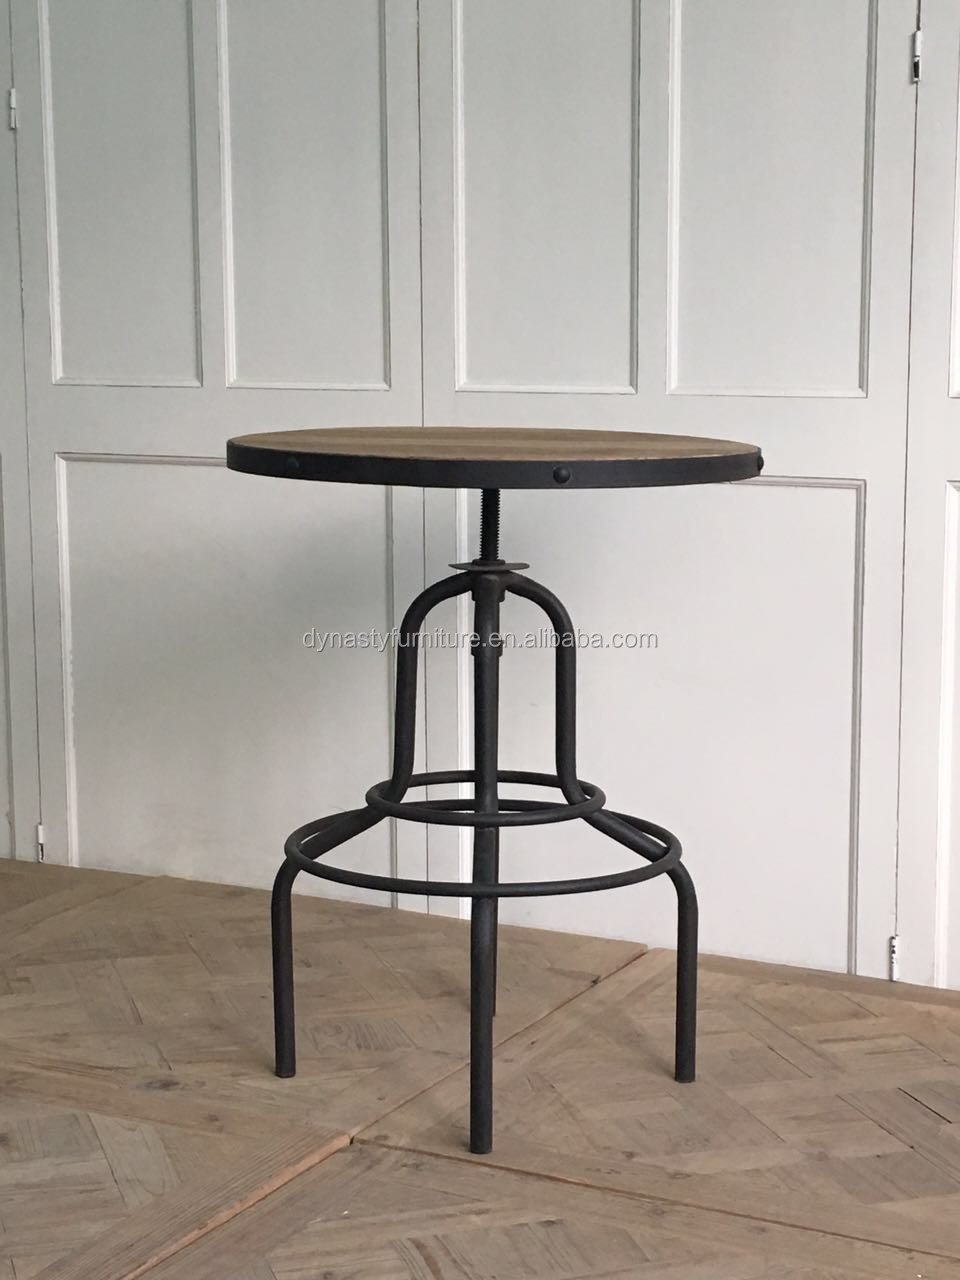 industrial <strong>bar</strong> furniture design metal <strong>bar</strong> table with wooden top goods